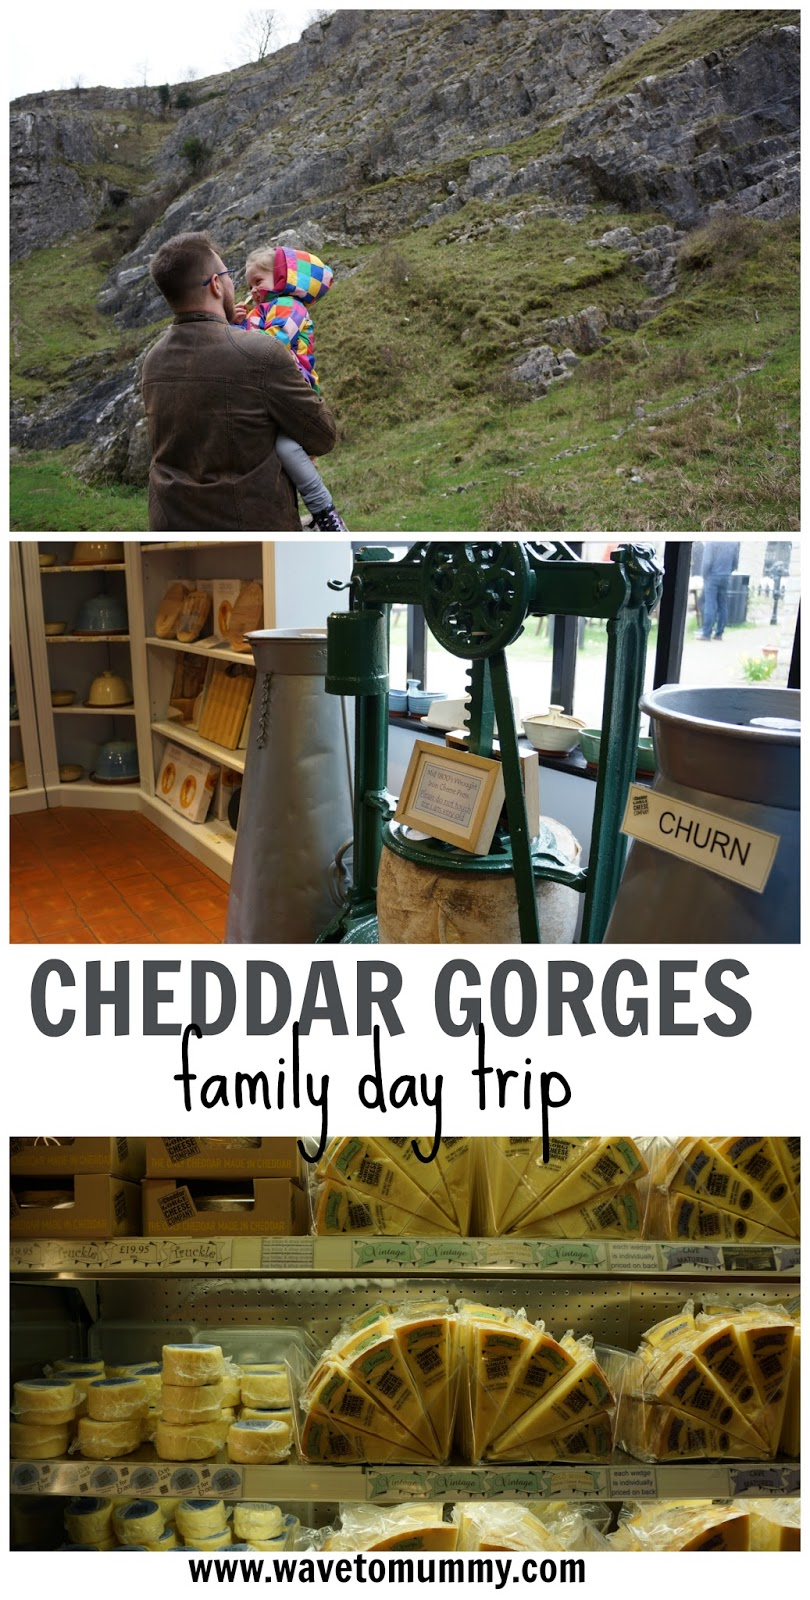 A mini family day trip to Cheddar Gorges - top tips on what to do and where to go in Cheddar Gorges. This is a great place to come with a family, have a picnic, and to buy cheddar cheese!